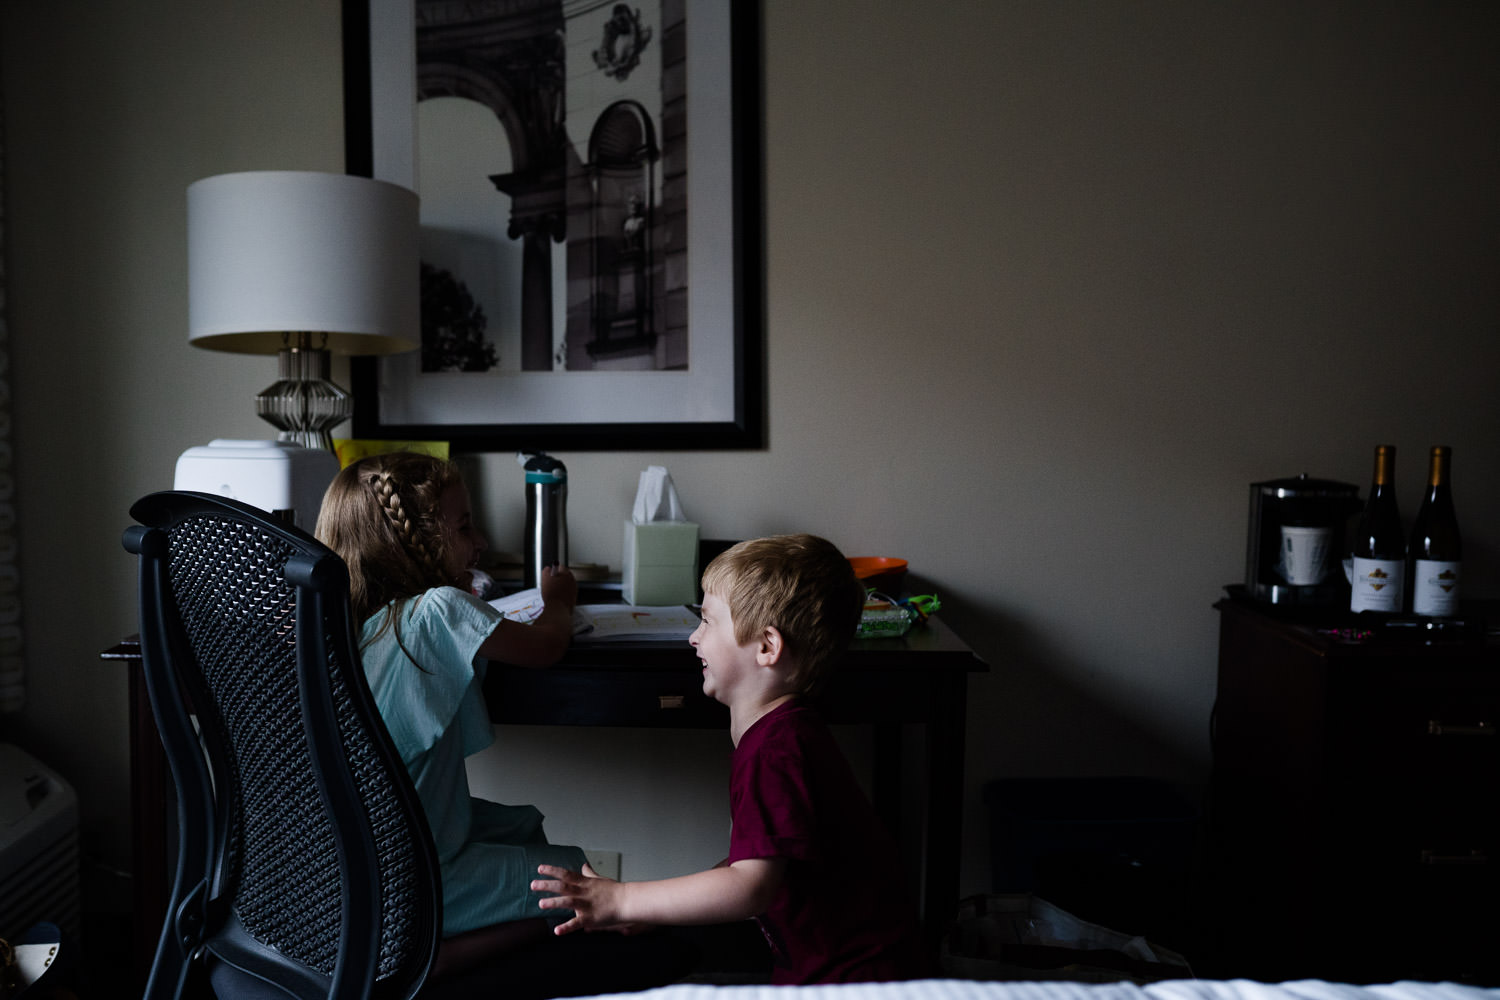 A little boy laughs at his sister by a hotel room desk.